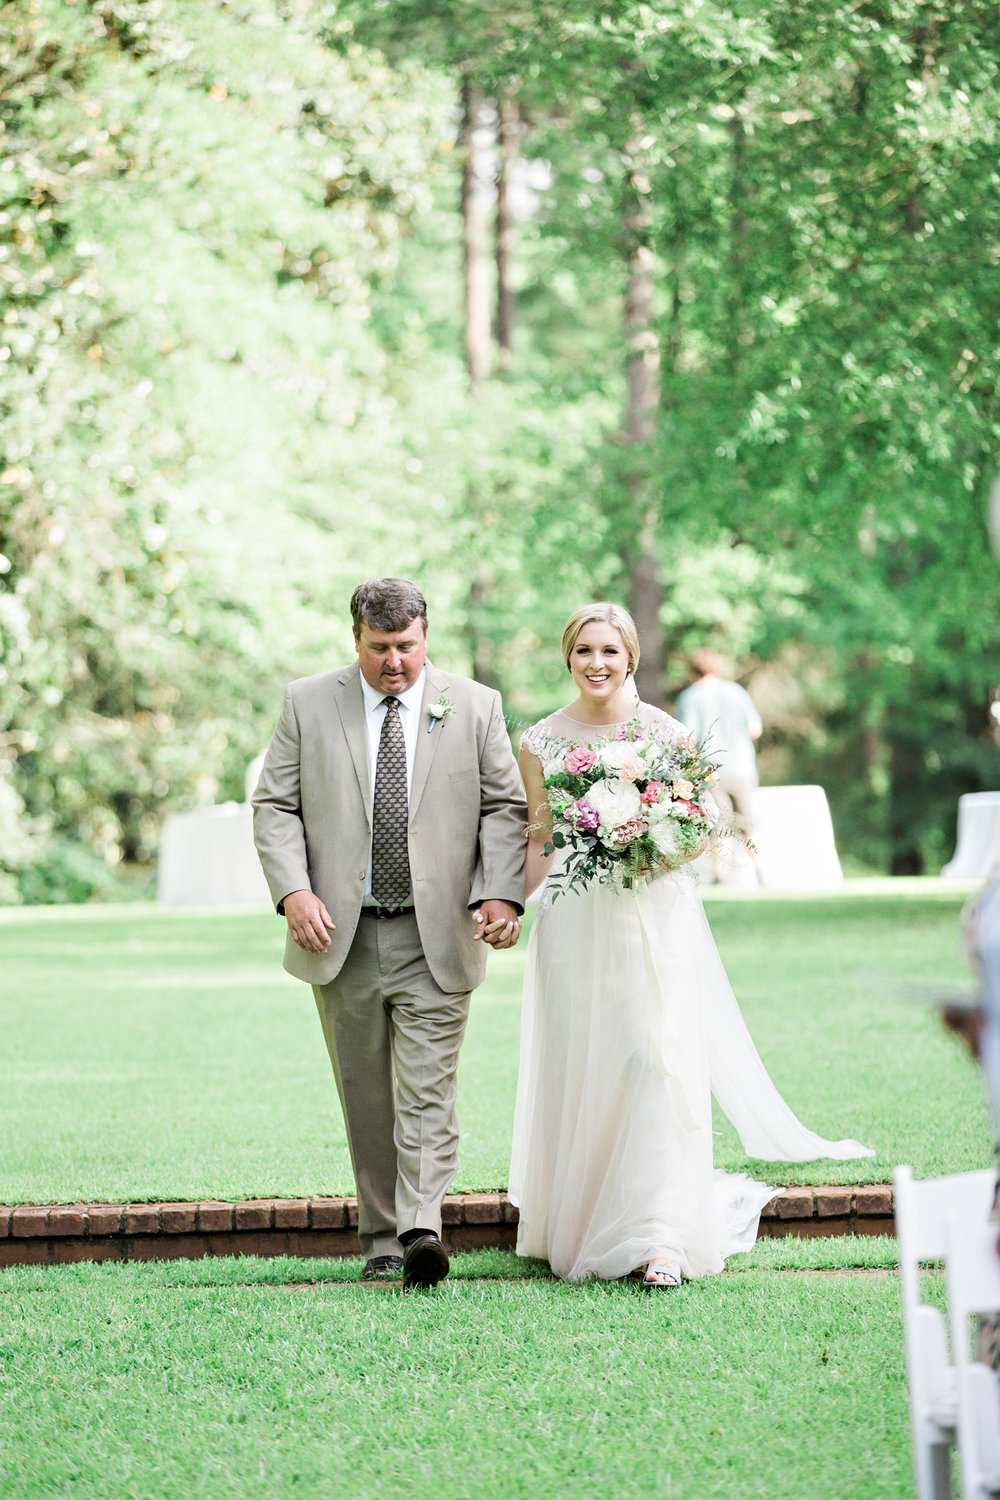 Matty-Drollette-Photography-Alabama-Weddings-Sara and Logan-133.jpg